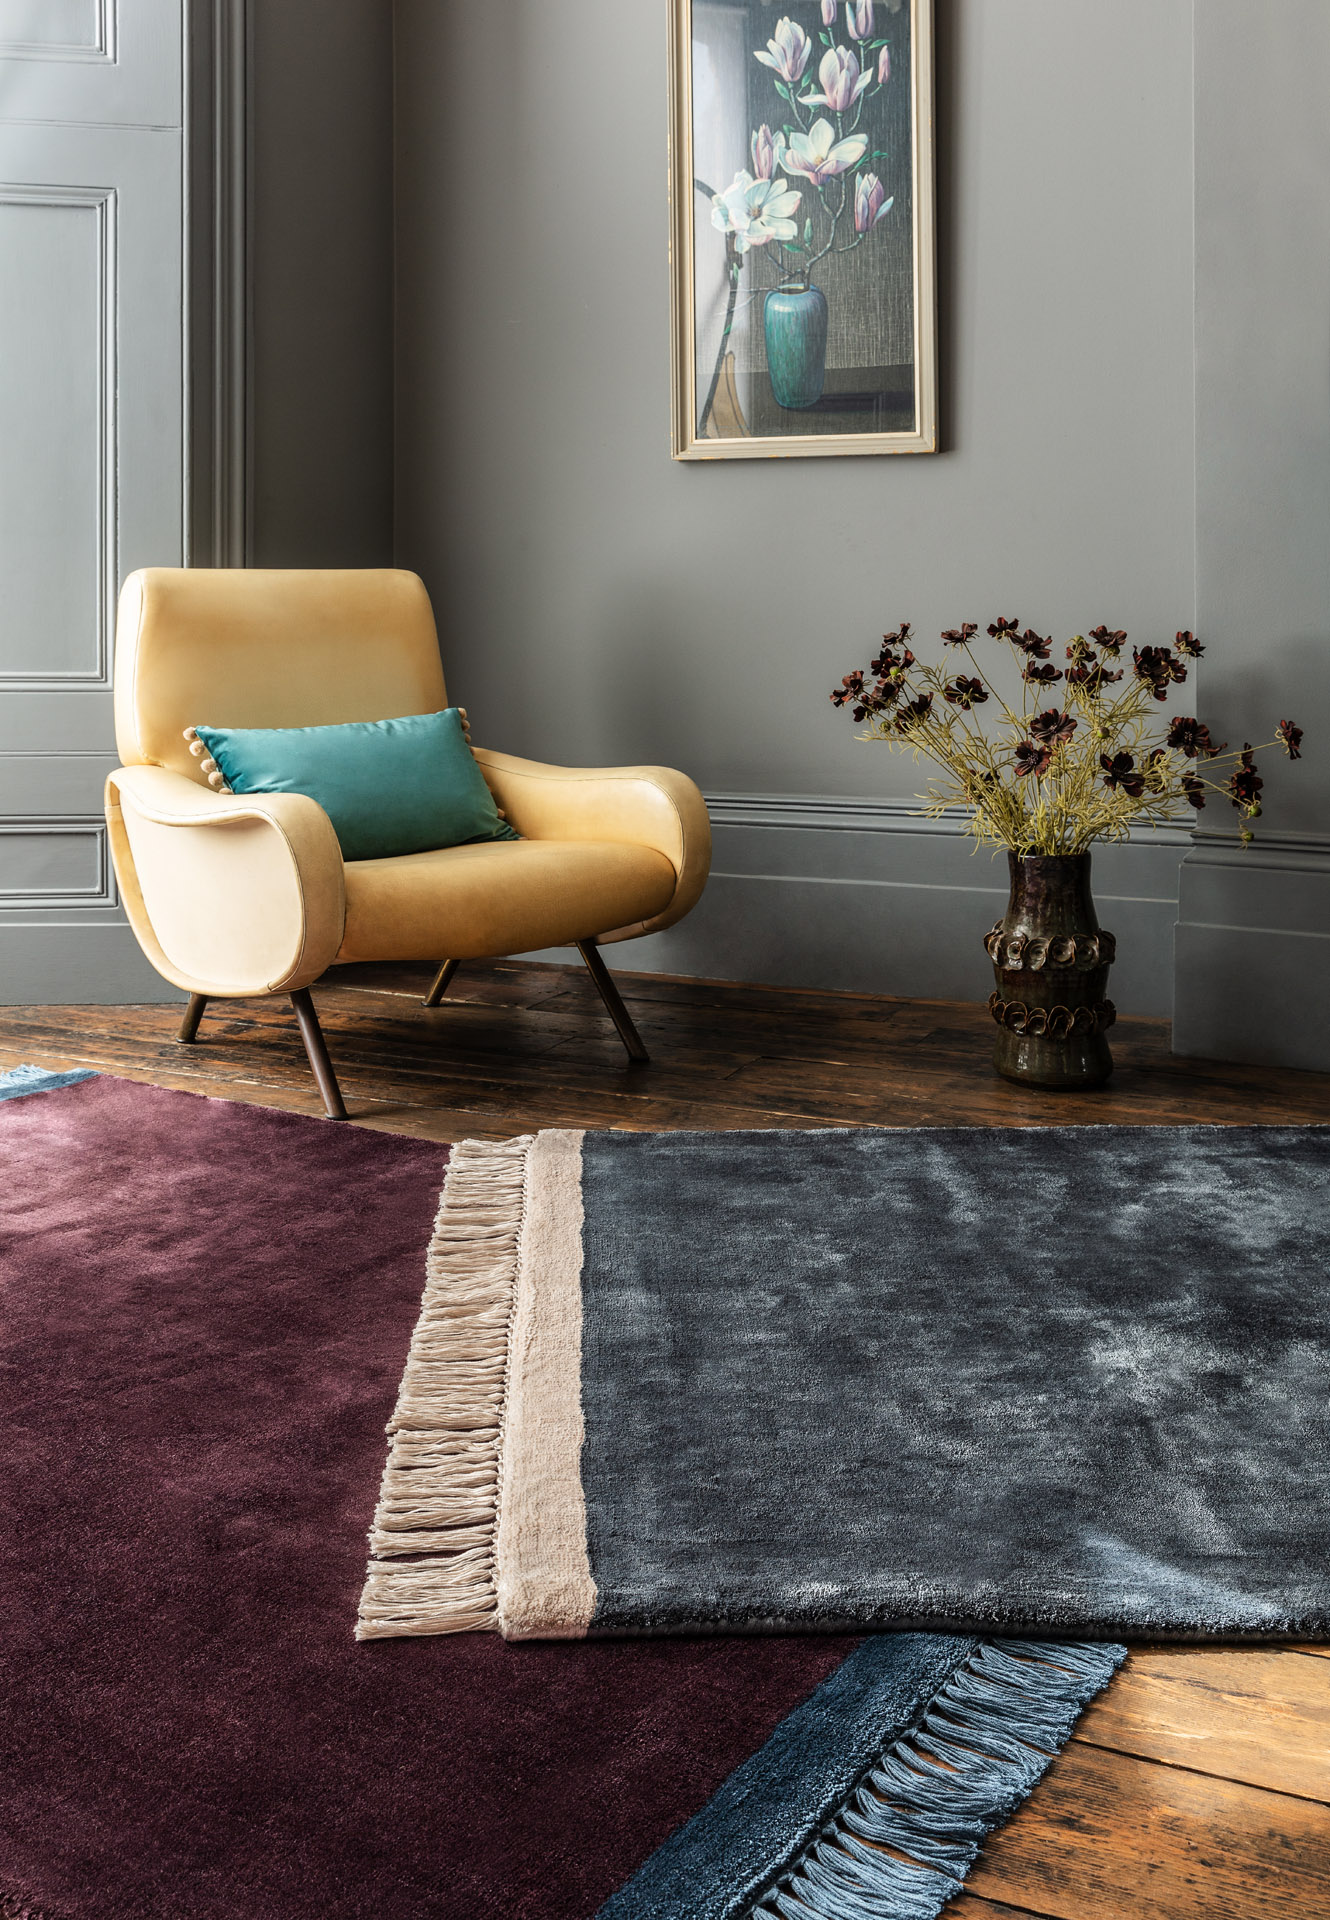 Elgin Rugs (Purple and Blue) overlapping in a room setting